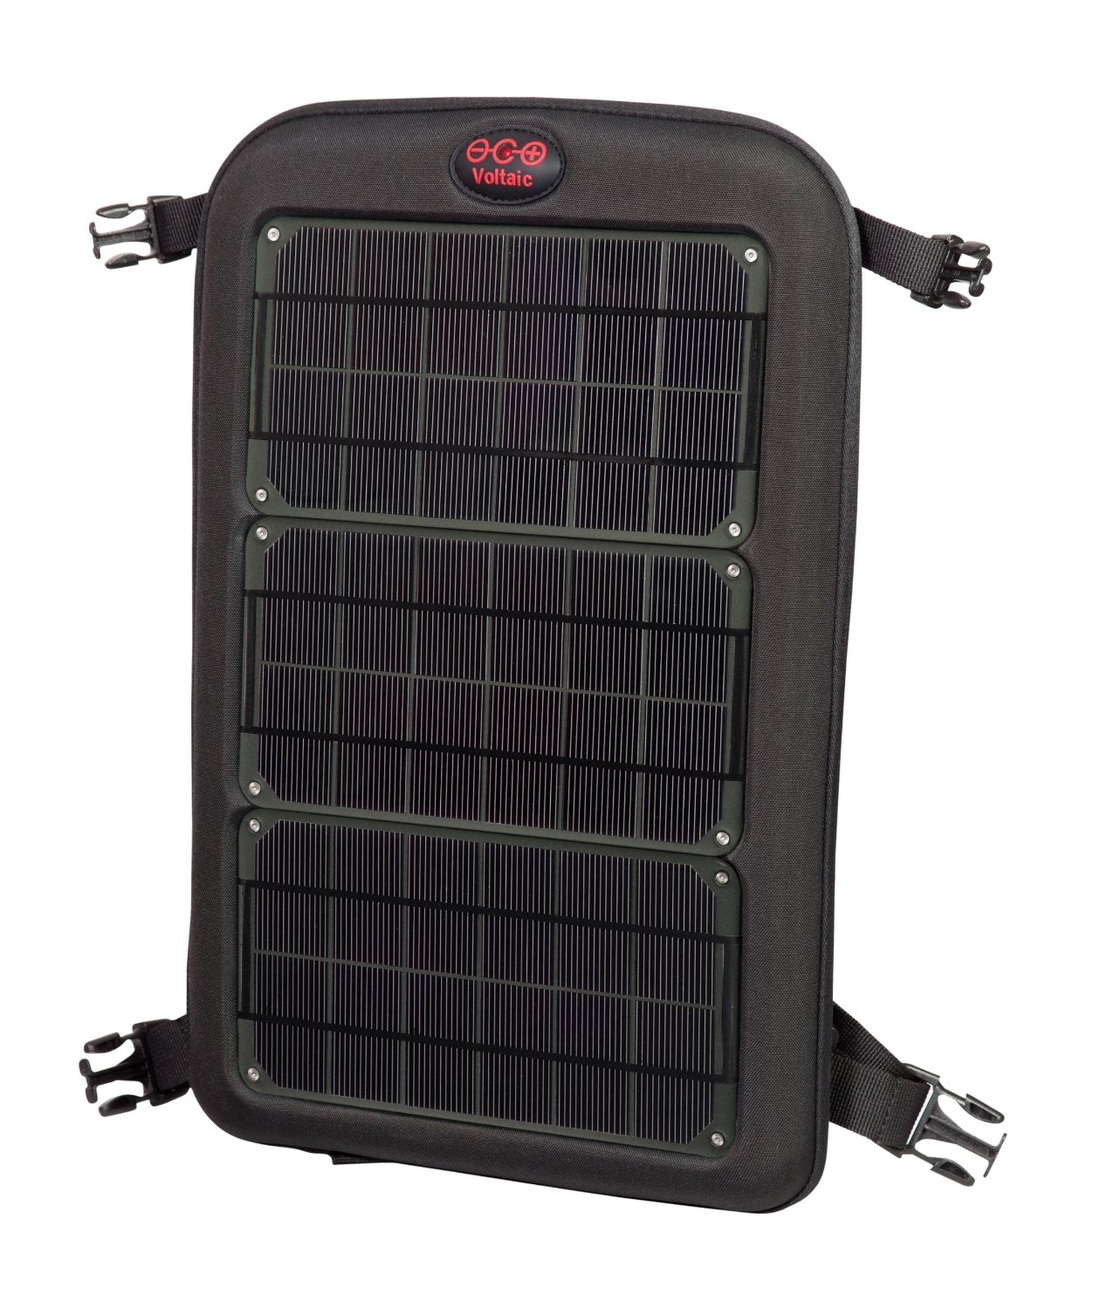 Picture of Voltaic portable solar panel for bicycle touring and bike travel